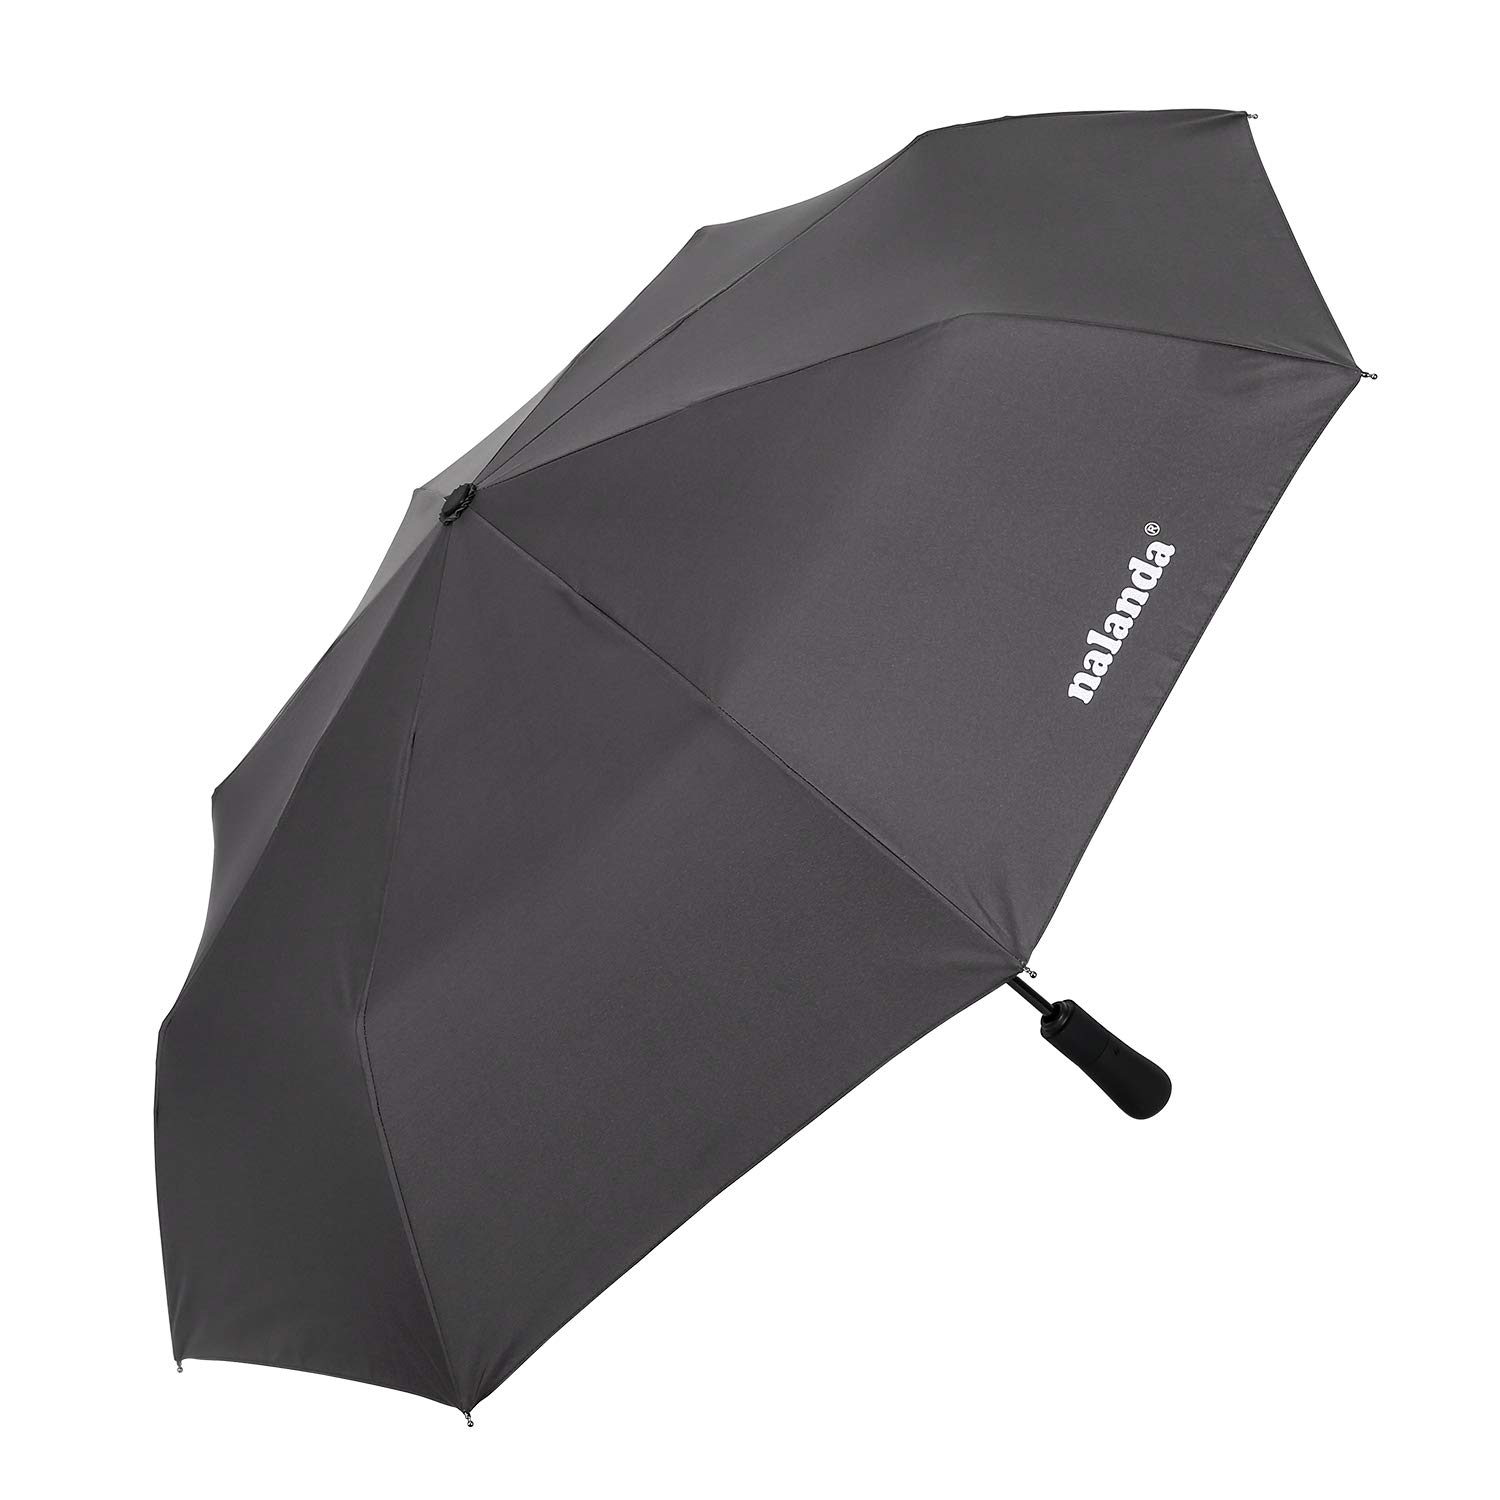 Nalanda Automatic Folding Travel & Business Umbrella Auto Open and Close with Windproof Frame, High Density Anti-microbial Material(Space Grey)